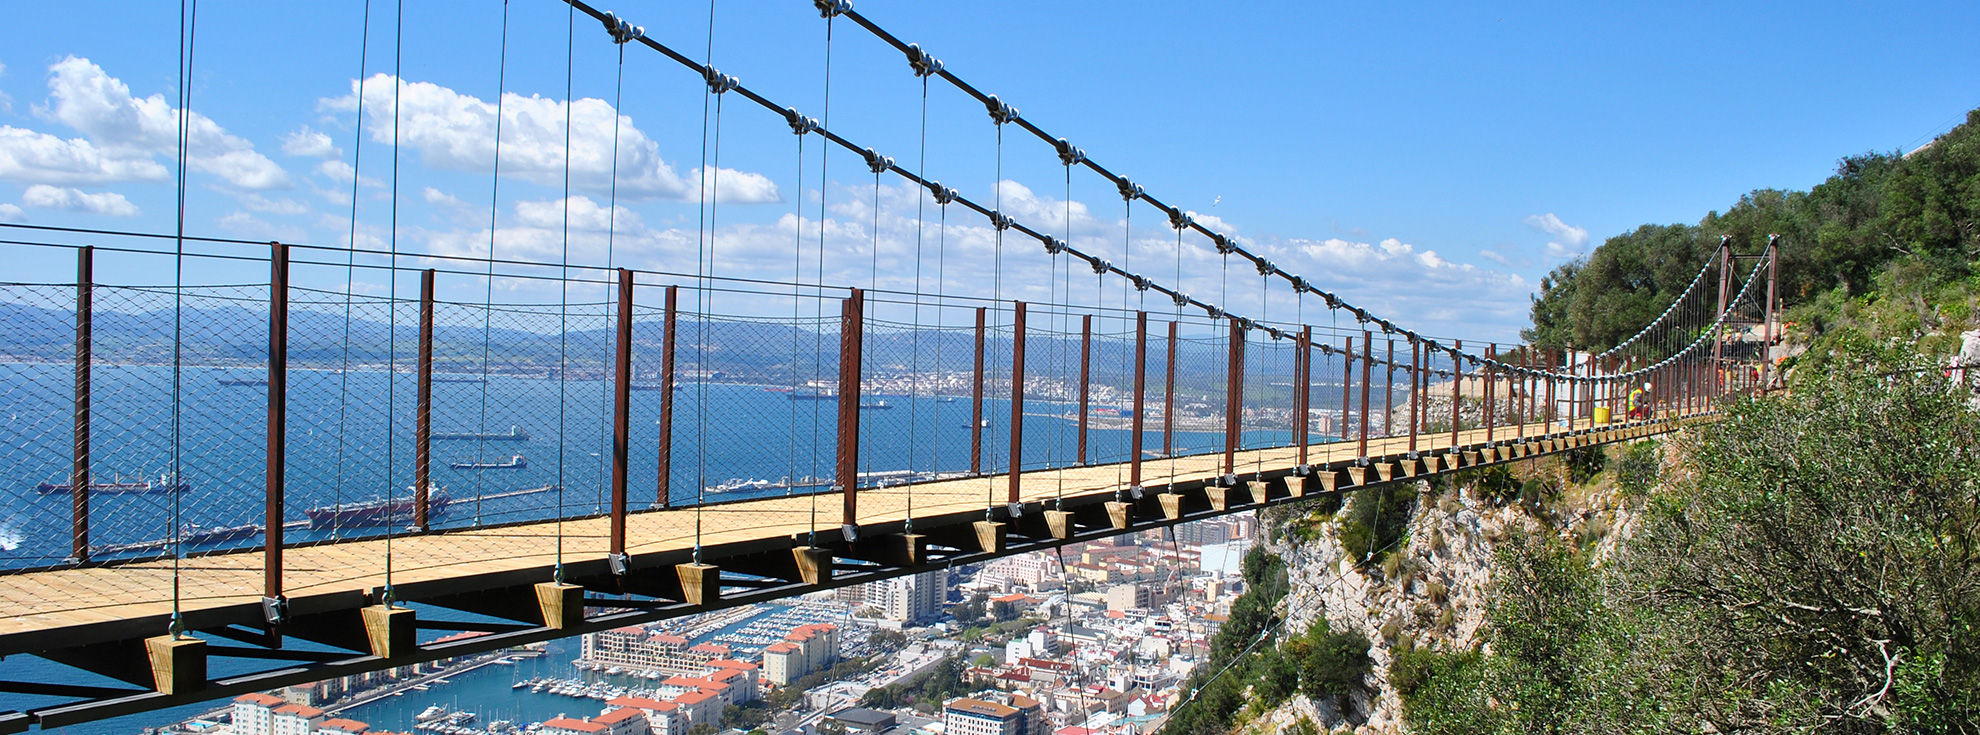 Windsor Suspended Bridge in Gibraltar, UK